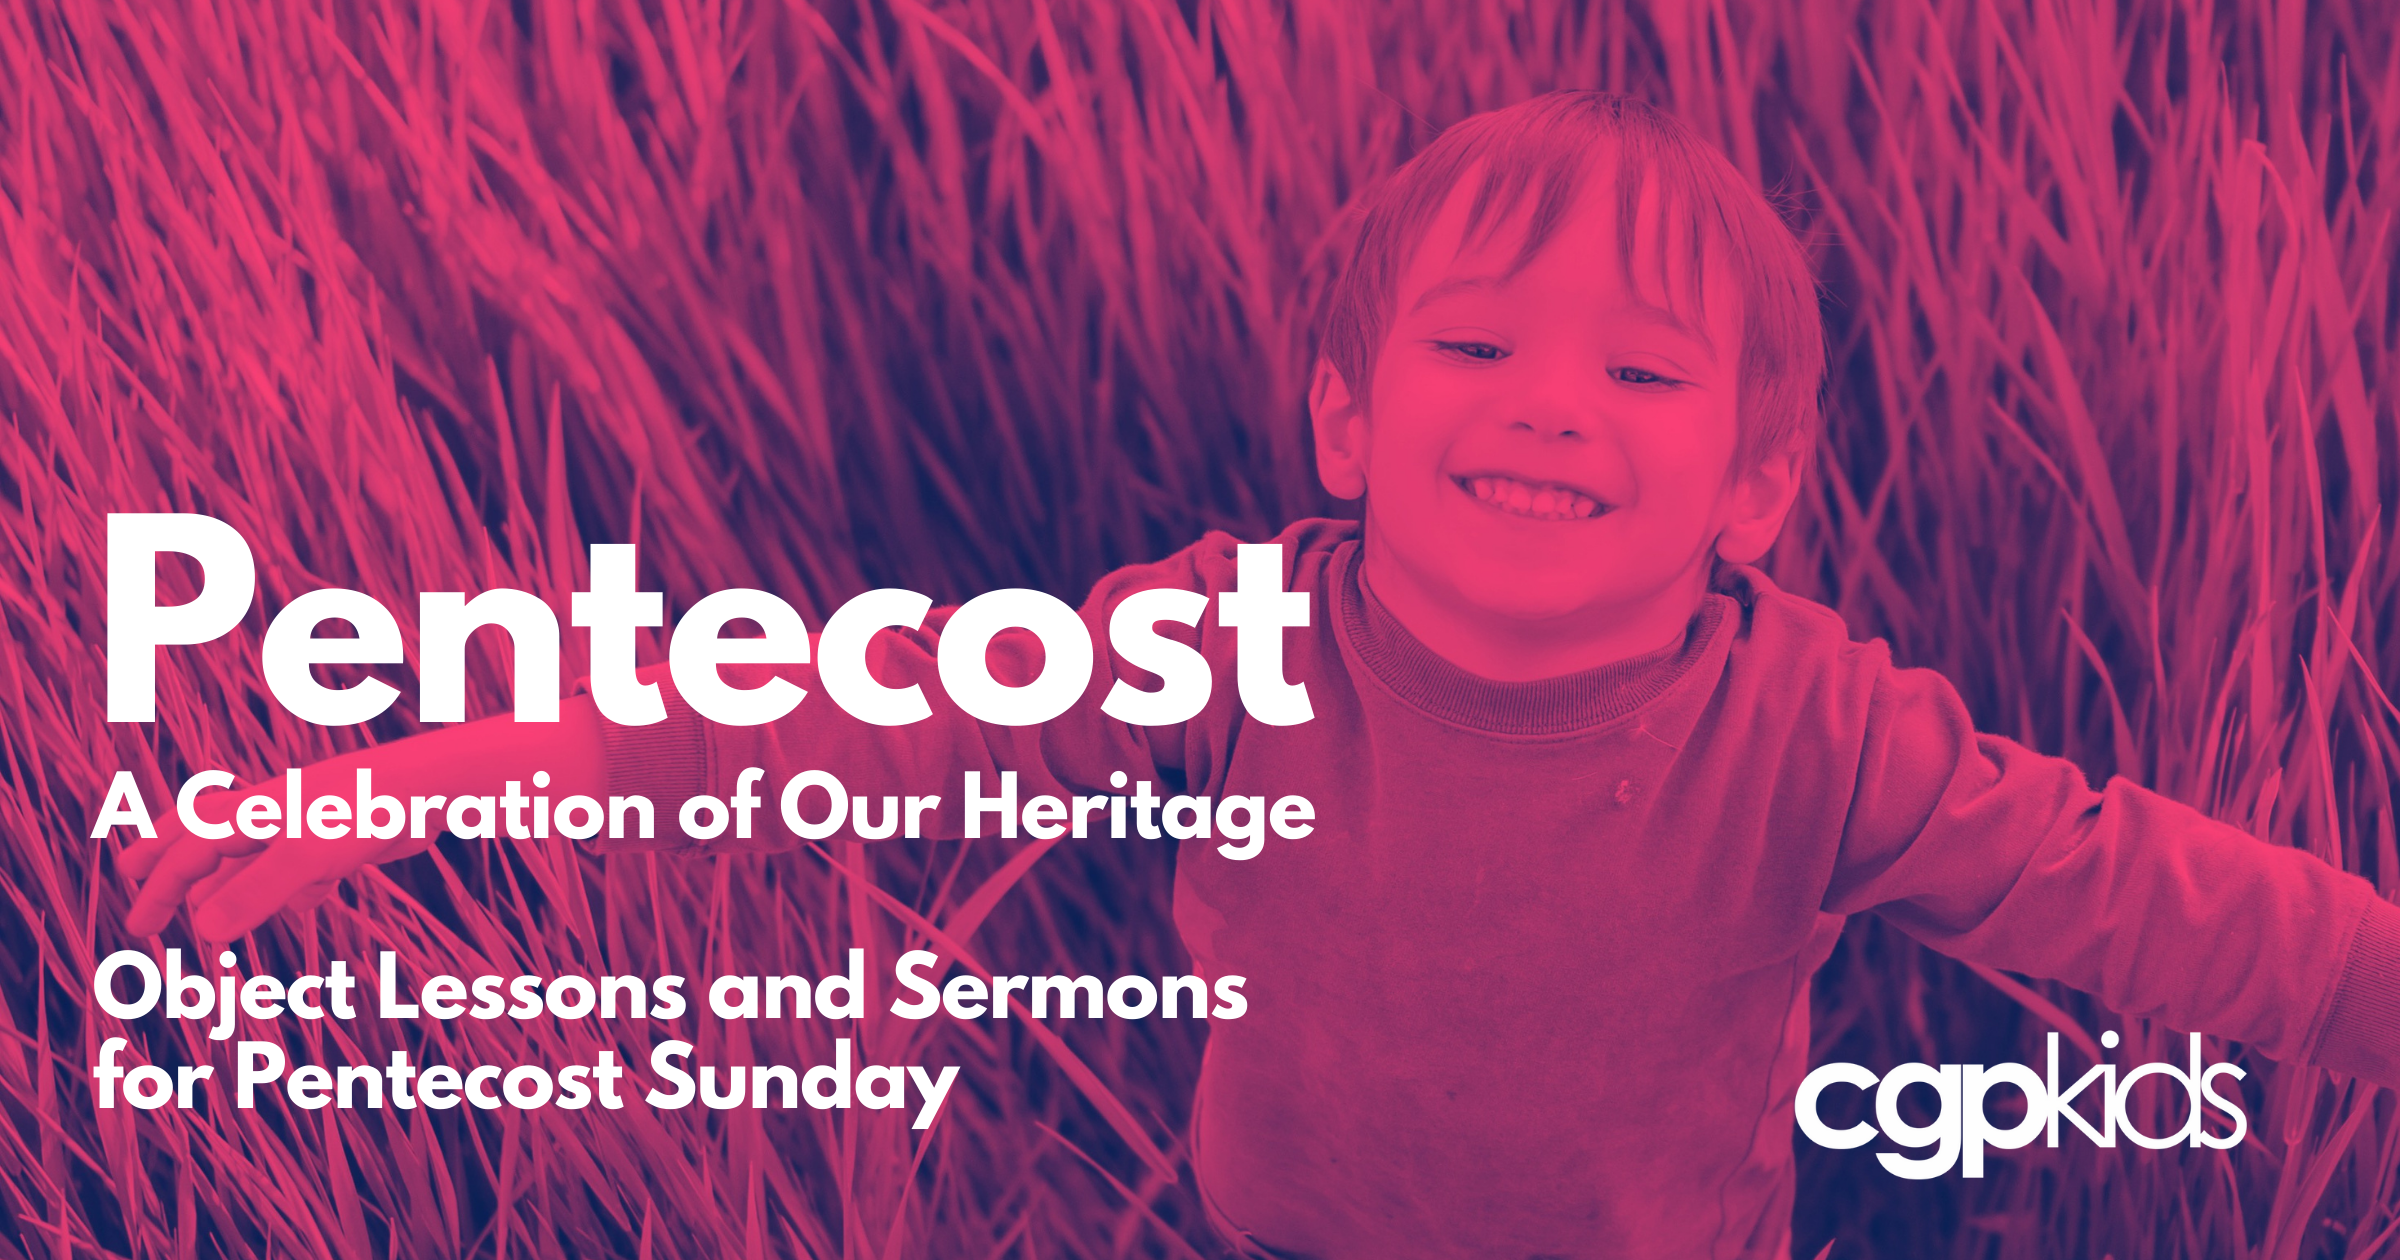 Pentecost: A Celebration of Our Heritage